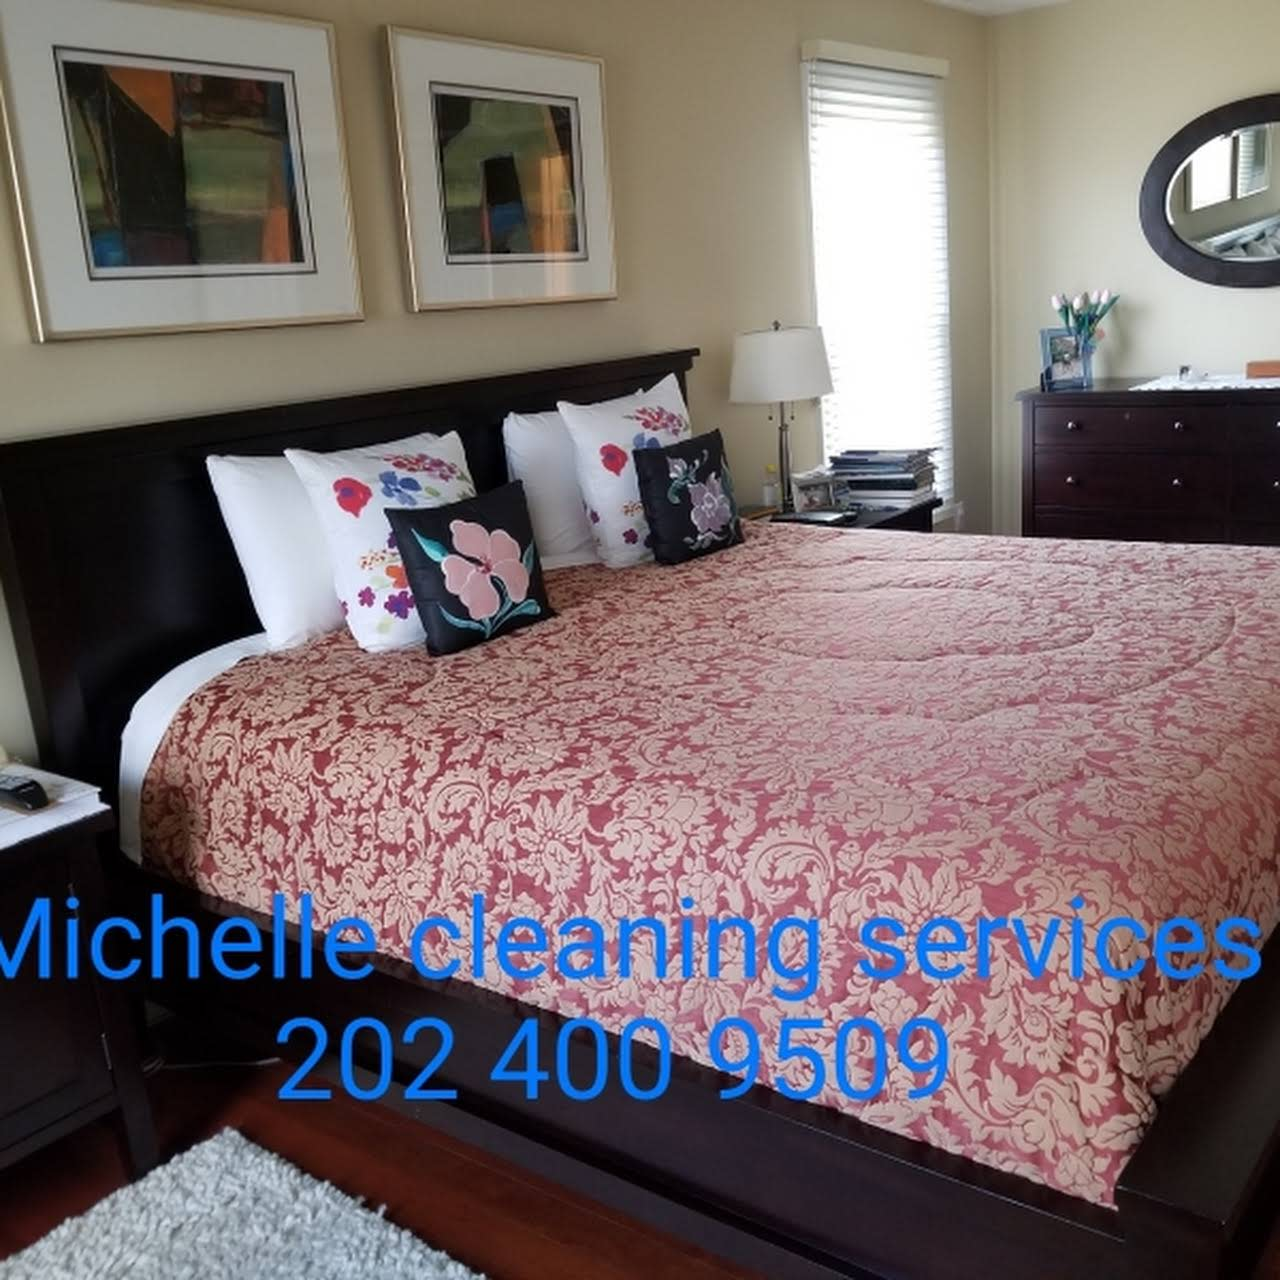 Michelle cleans to perfection LLC image 3